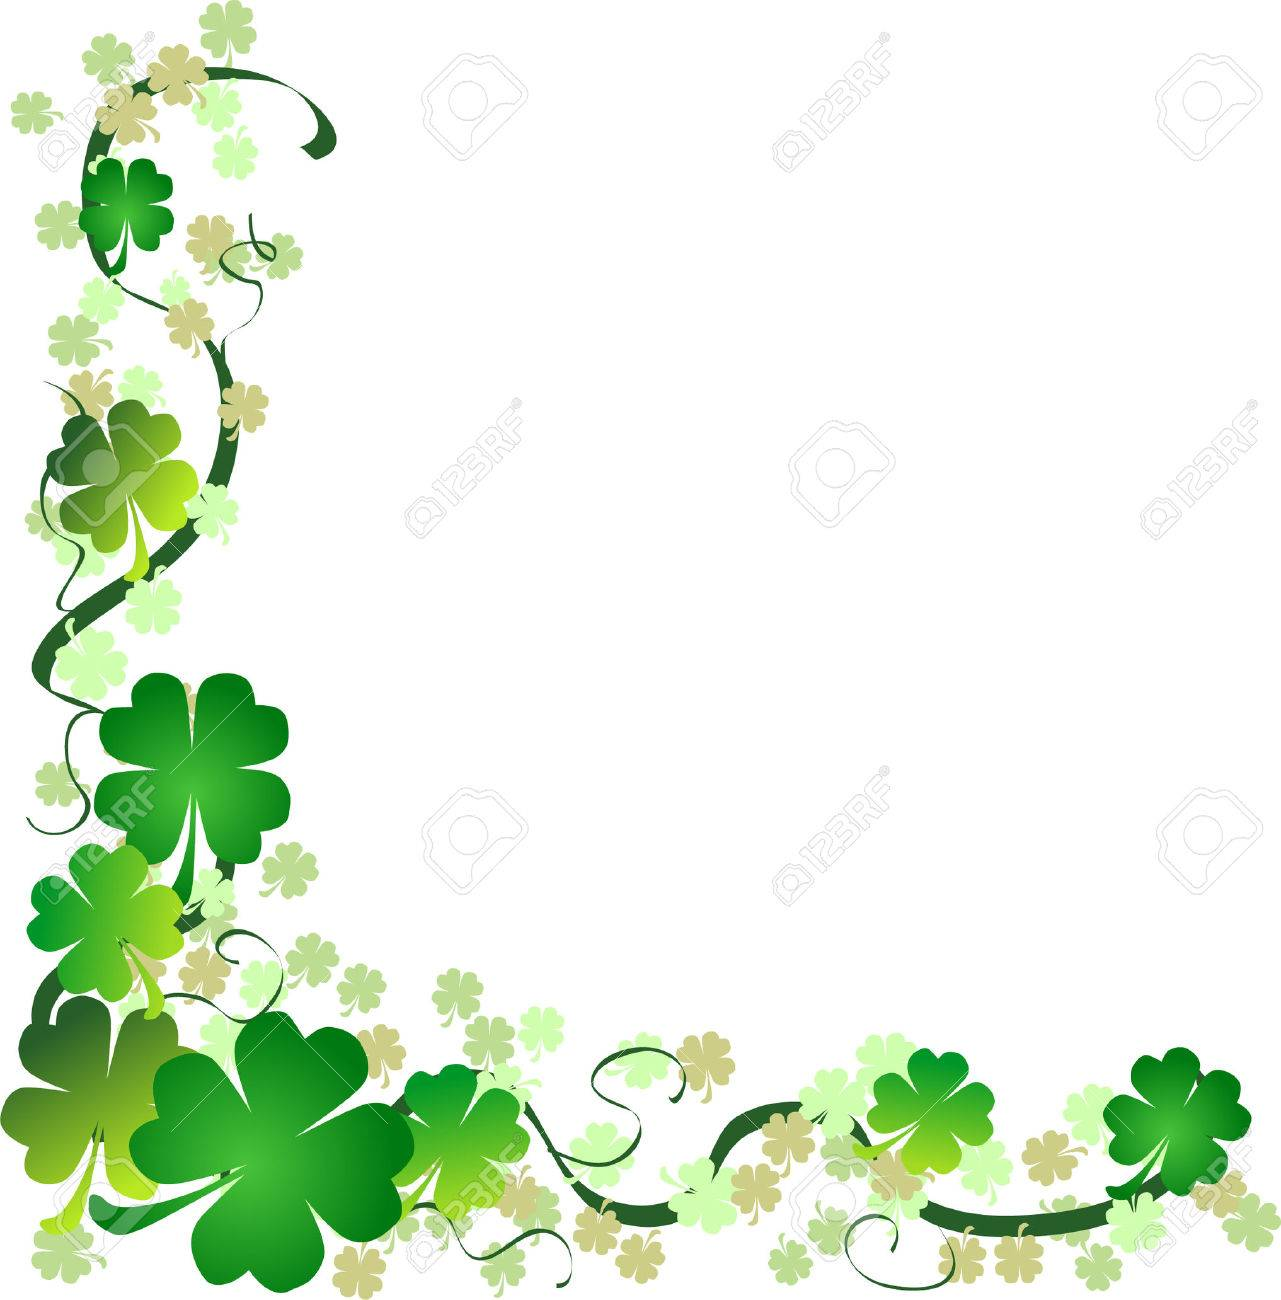 a st patrick u0027s day background with four leaf clovers royalty free